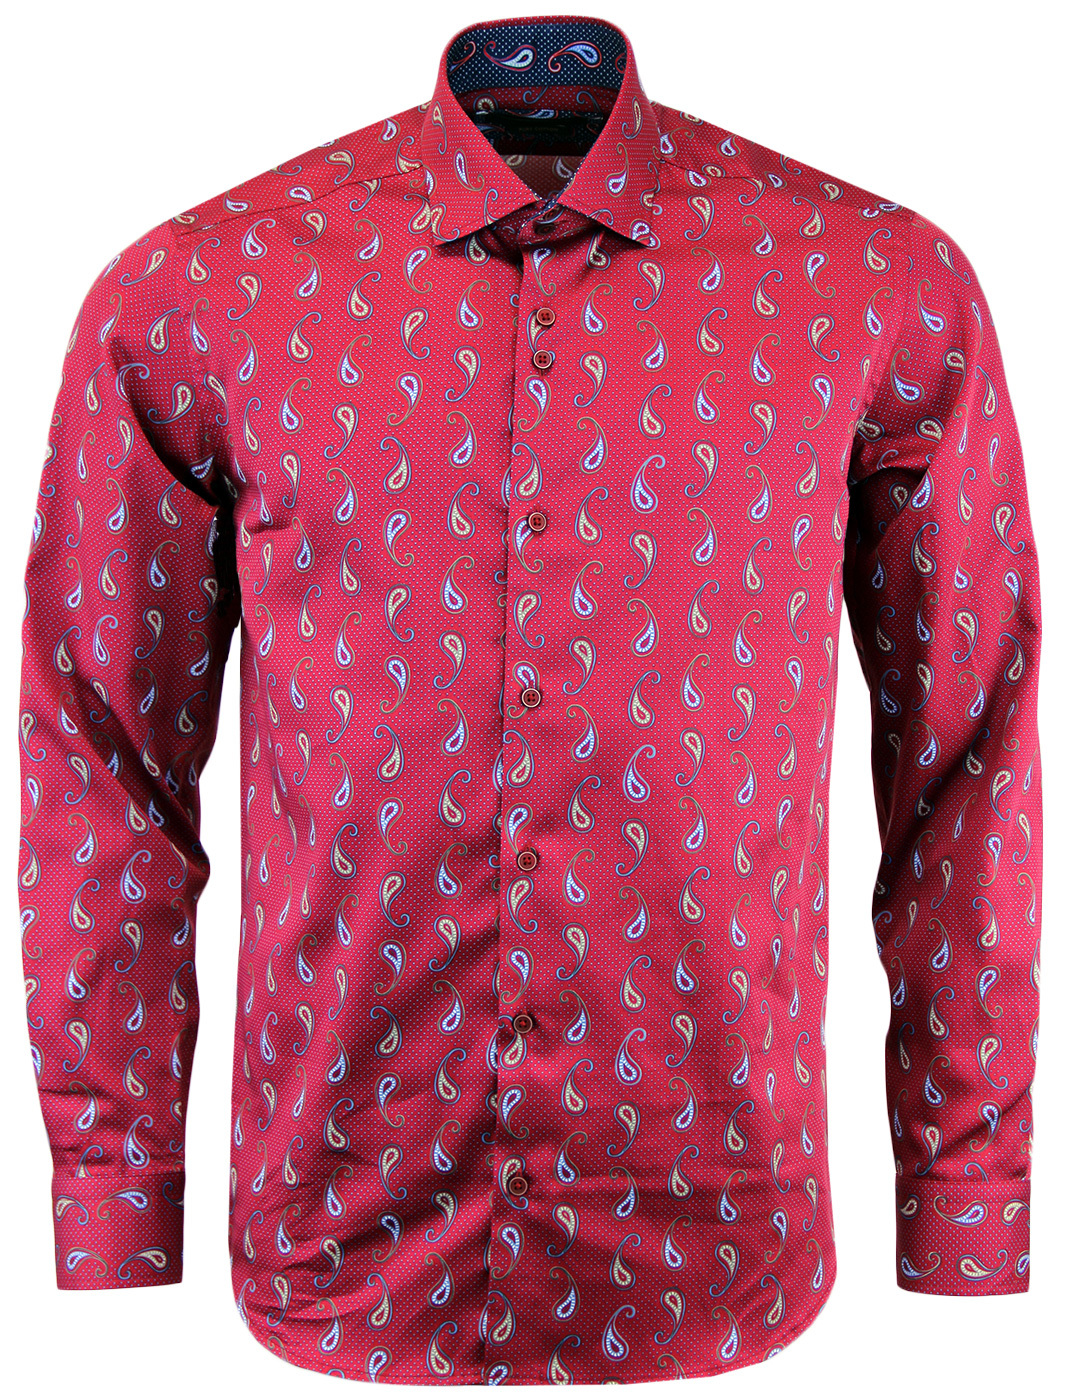 GUIDE LONDON 60s Mod Paisley Micro Square Shirt W